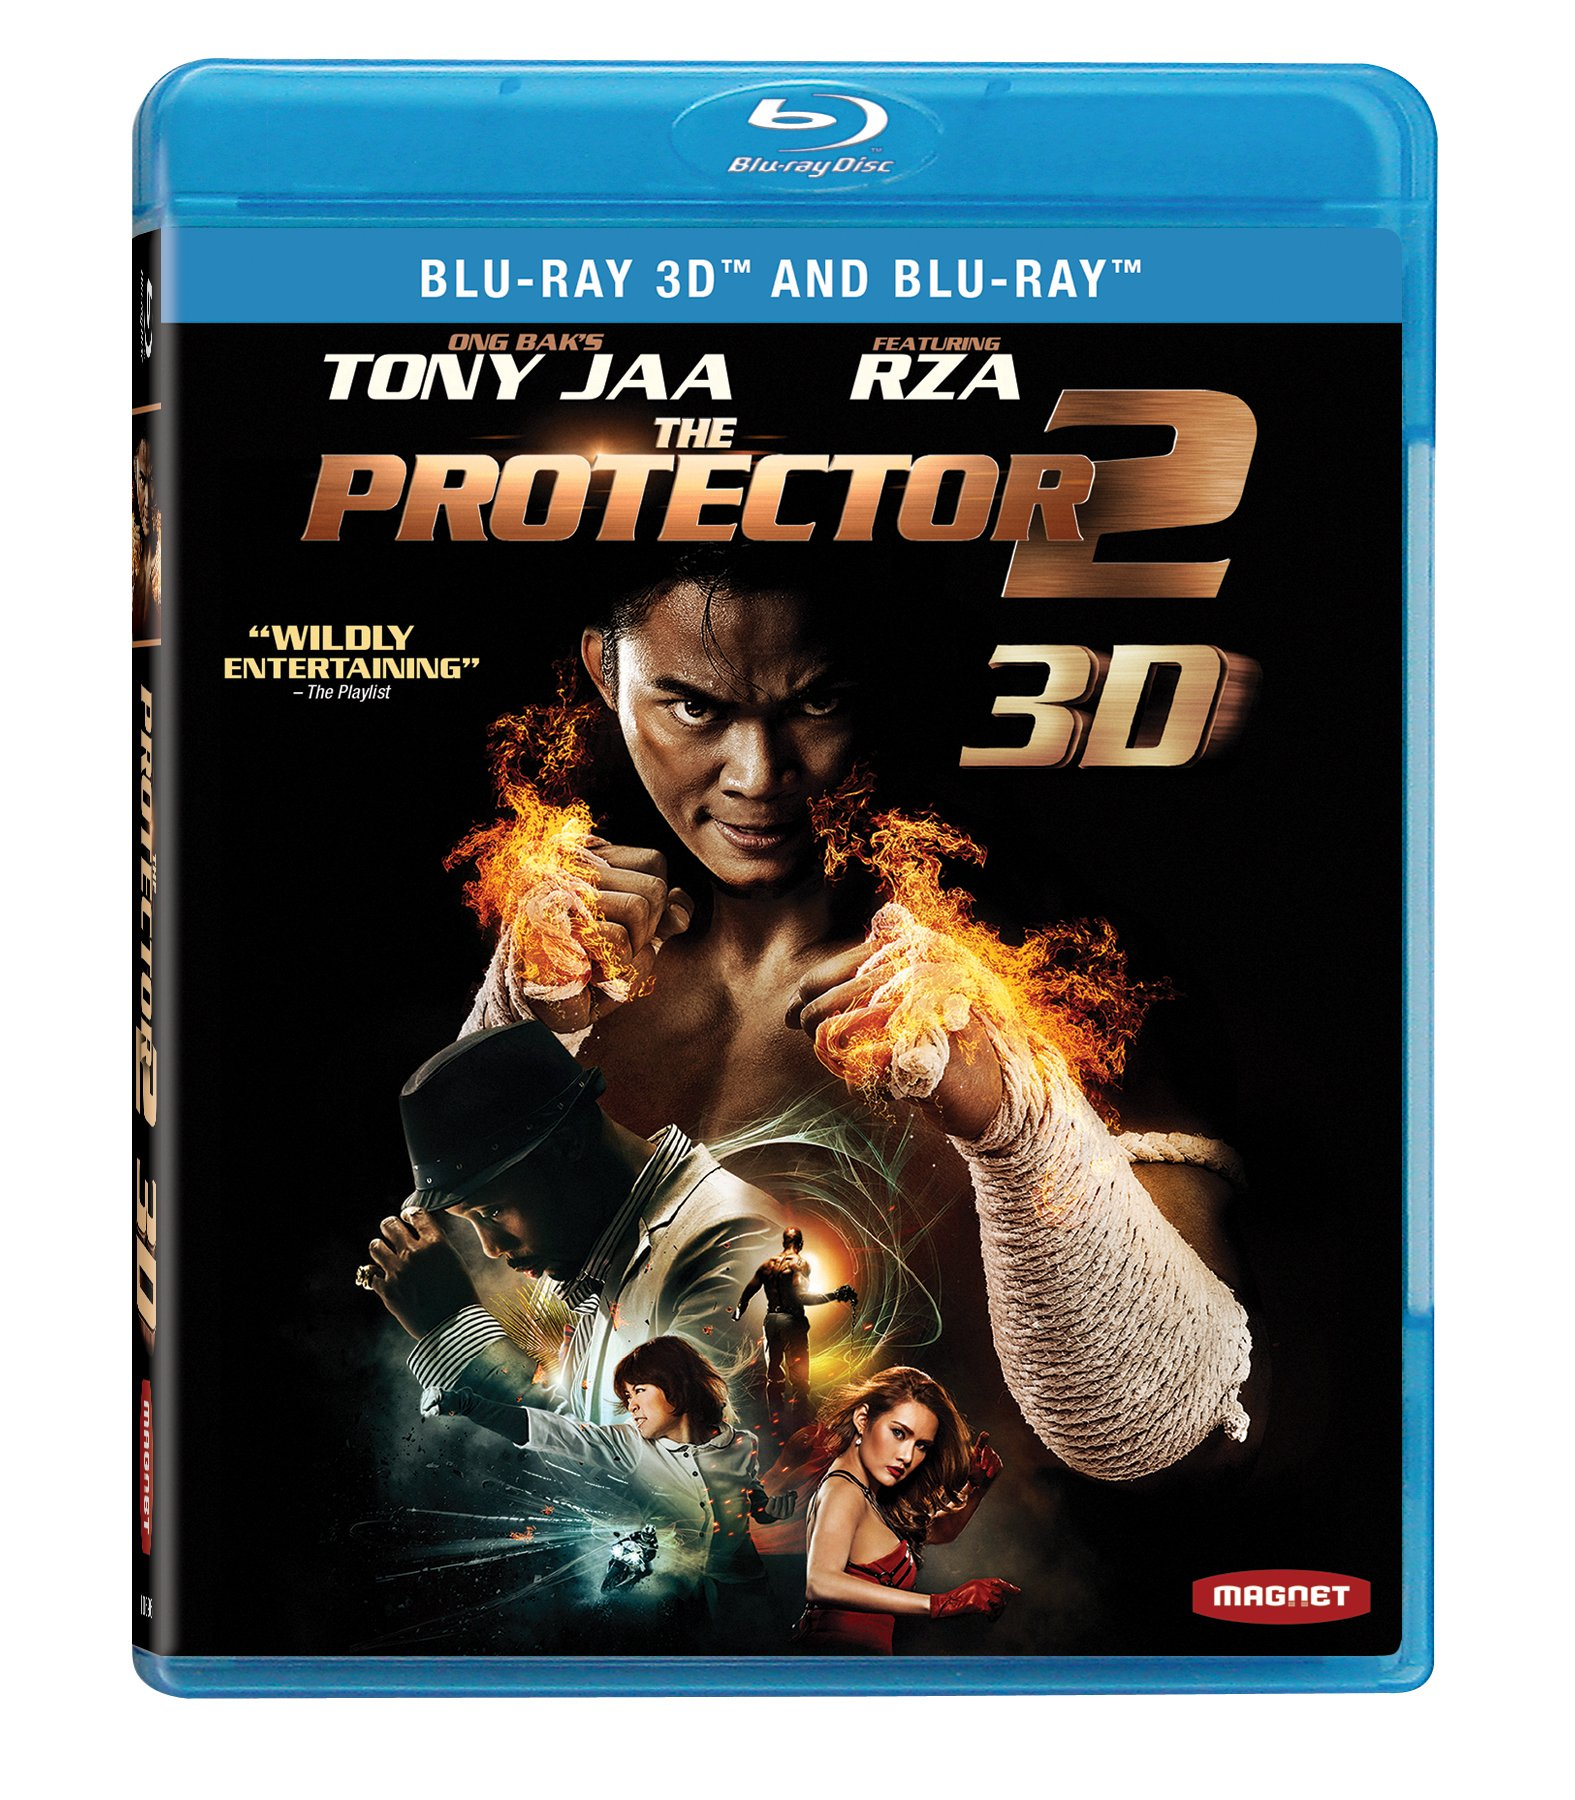 Blu-ray 3D : The Protector 2 (AC-3, 2 Pack, Dubbed, , Widescreen)